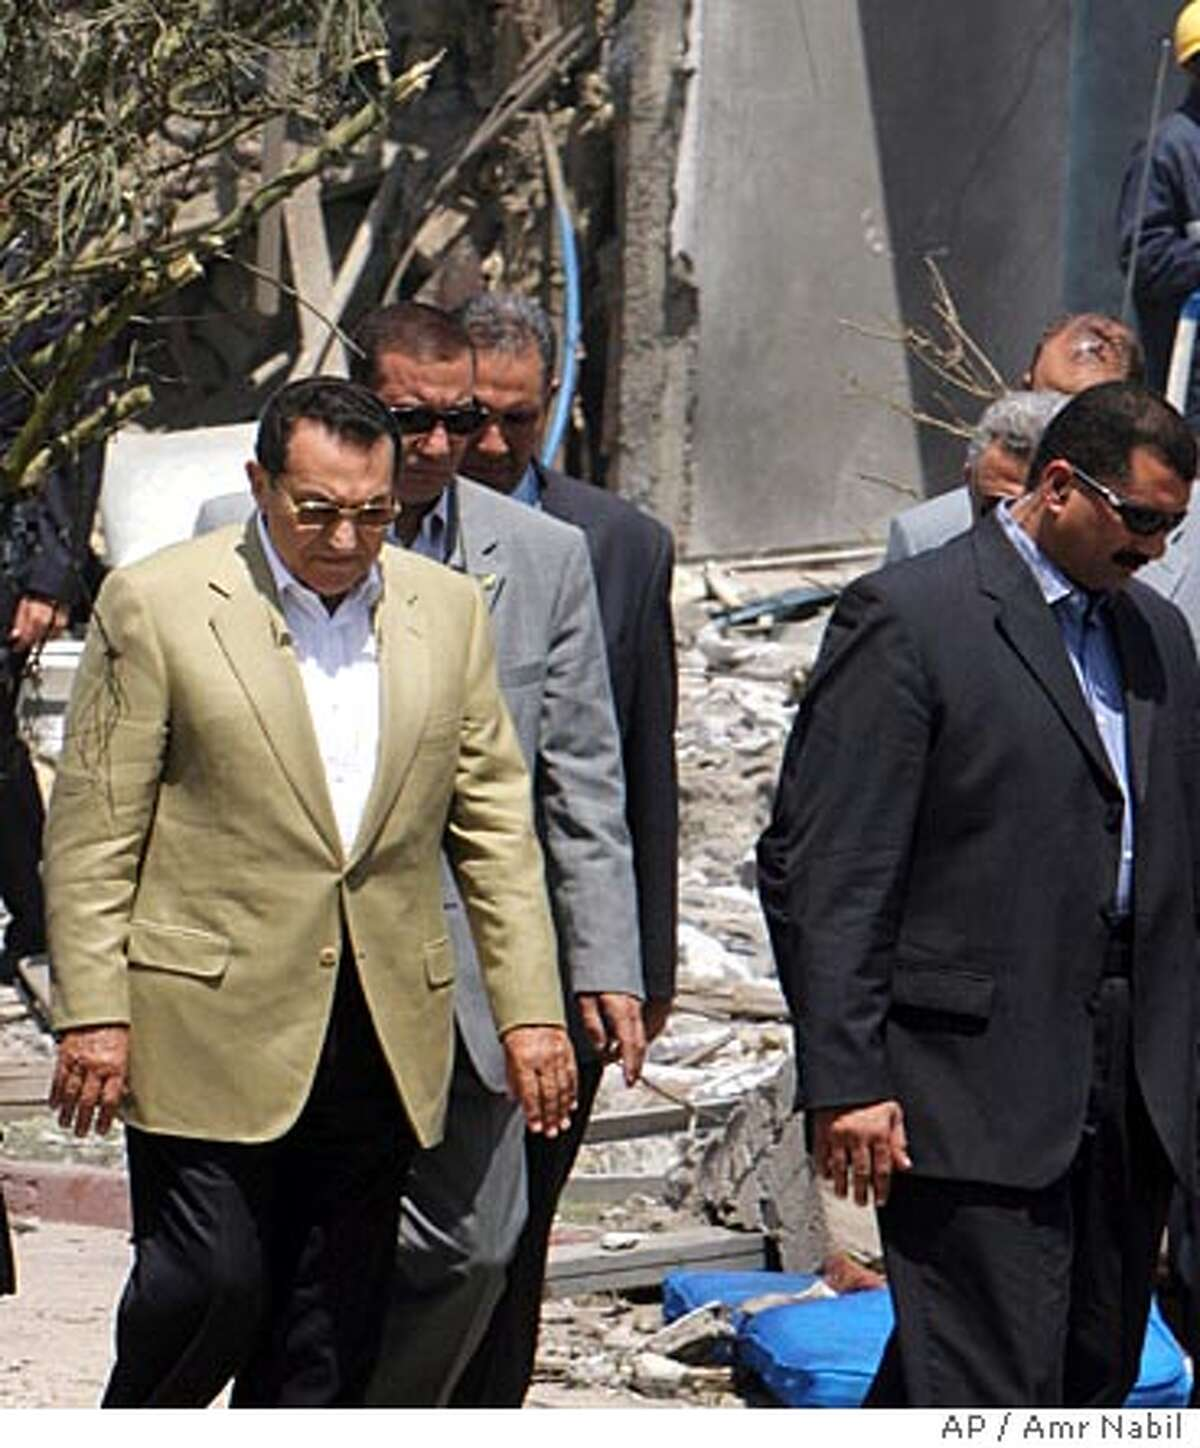 Egyptian President Hosni Mubarak, left, visits the site of a Gazala Gardens Hotel following an explosion in Egypt's Red Sea resort of Sharm el-Sheik early Saturday July 23, 2005. Mutliple explosions rocked the Egyptian tourist resort of Sharm el-Sheik in the Sinai Peninsula early Saturday targeting several hotels. (AP Photo/Amr Nabil)